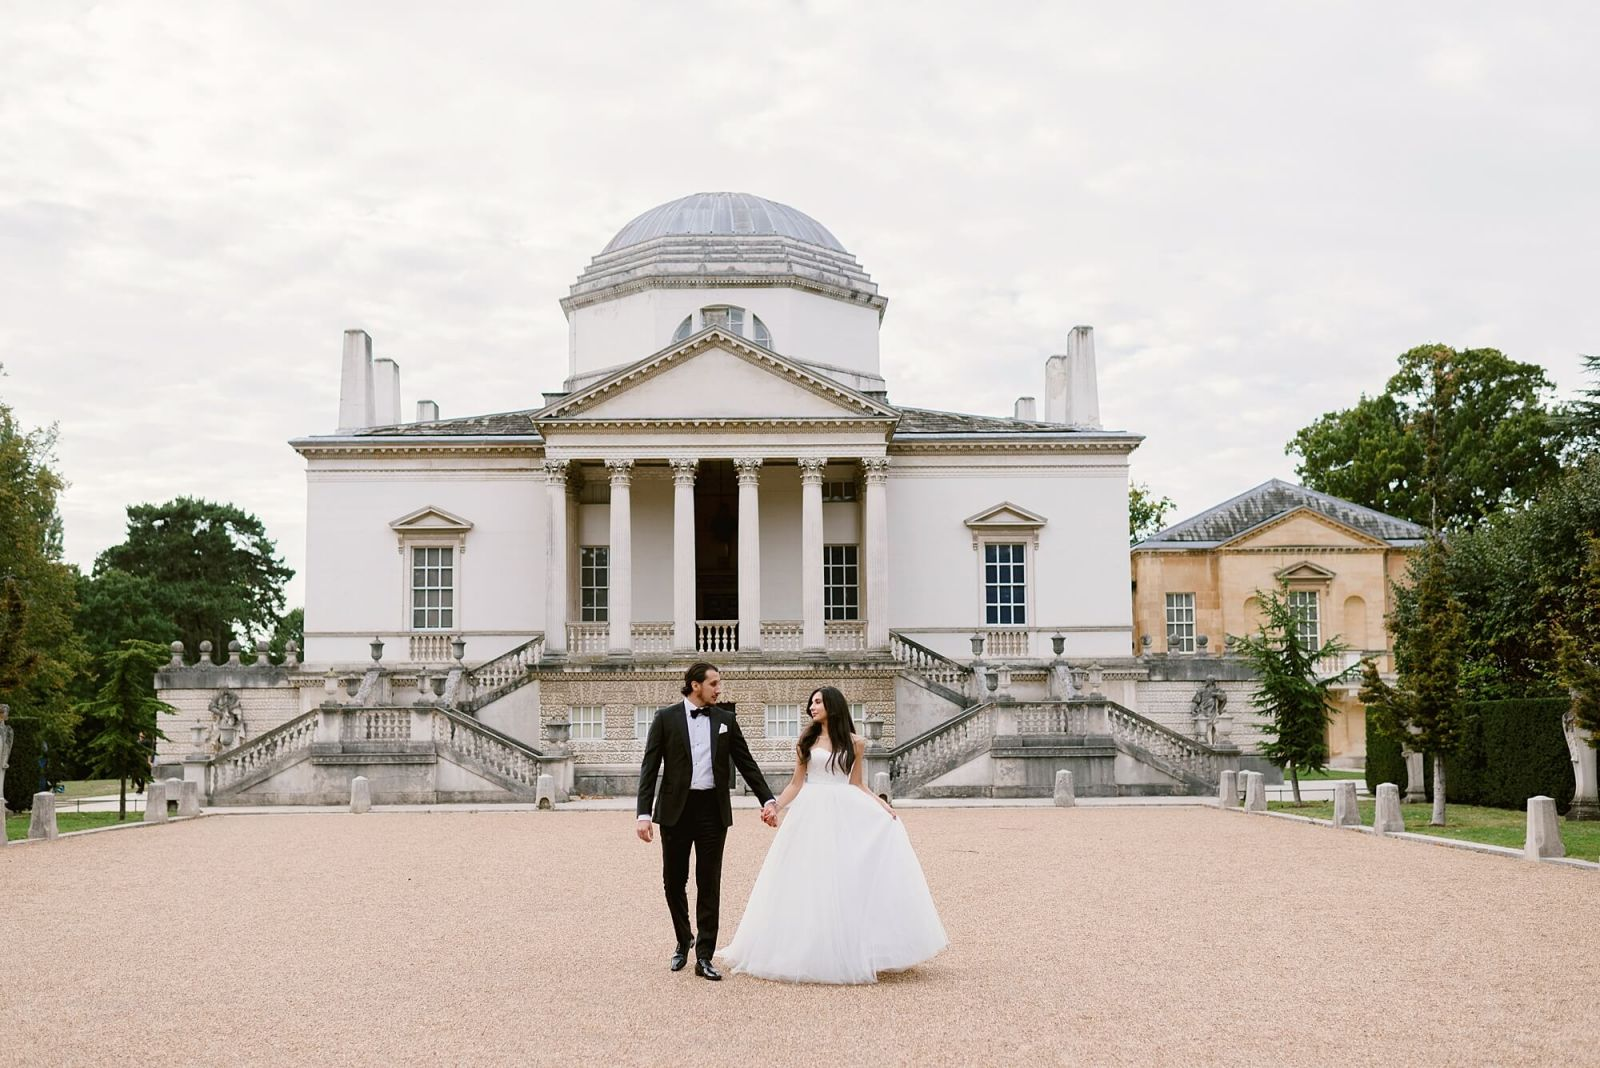 Chiswick House wedding photographer London Fine Art Photography